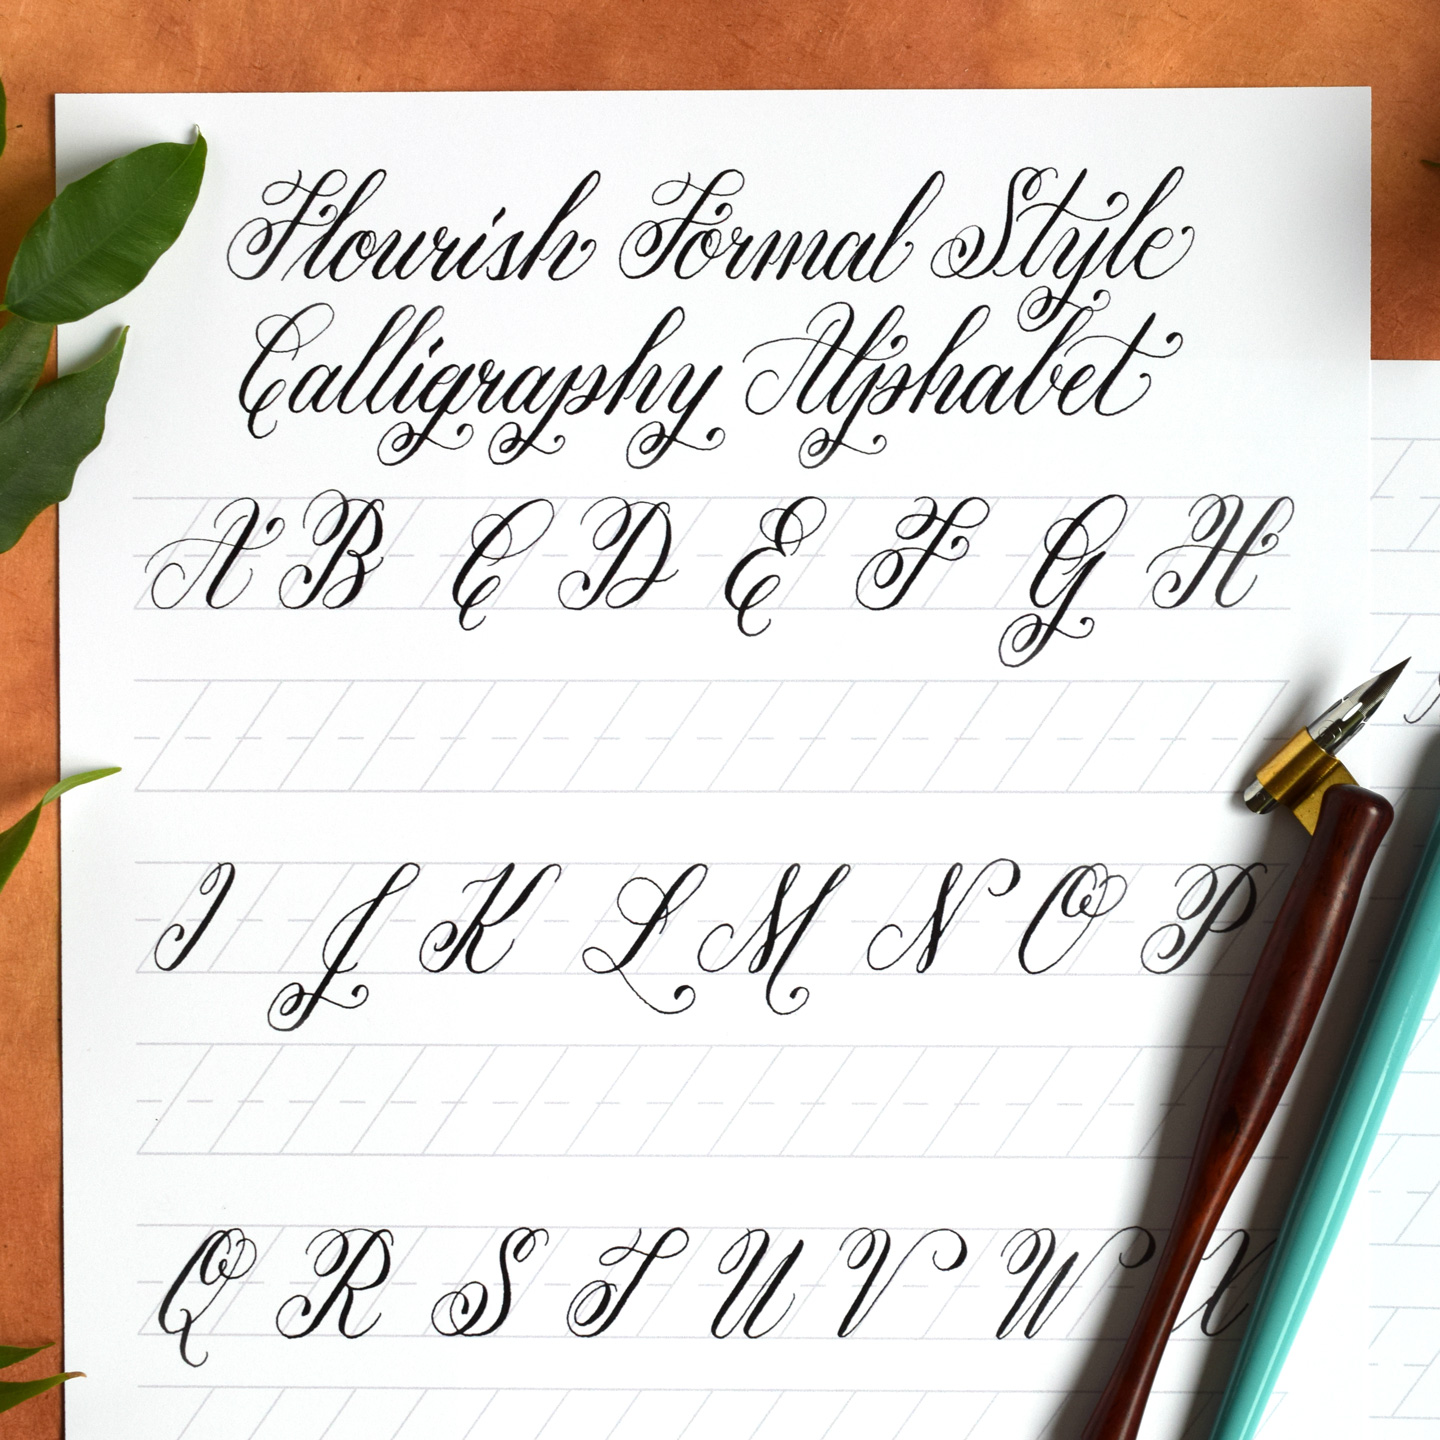 Free basic flourish formal calligraphy worksheet the Calligraphy basics